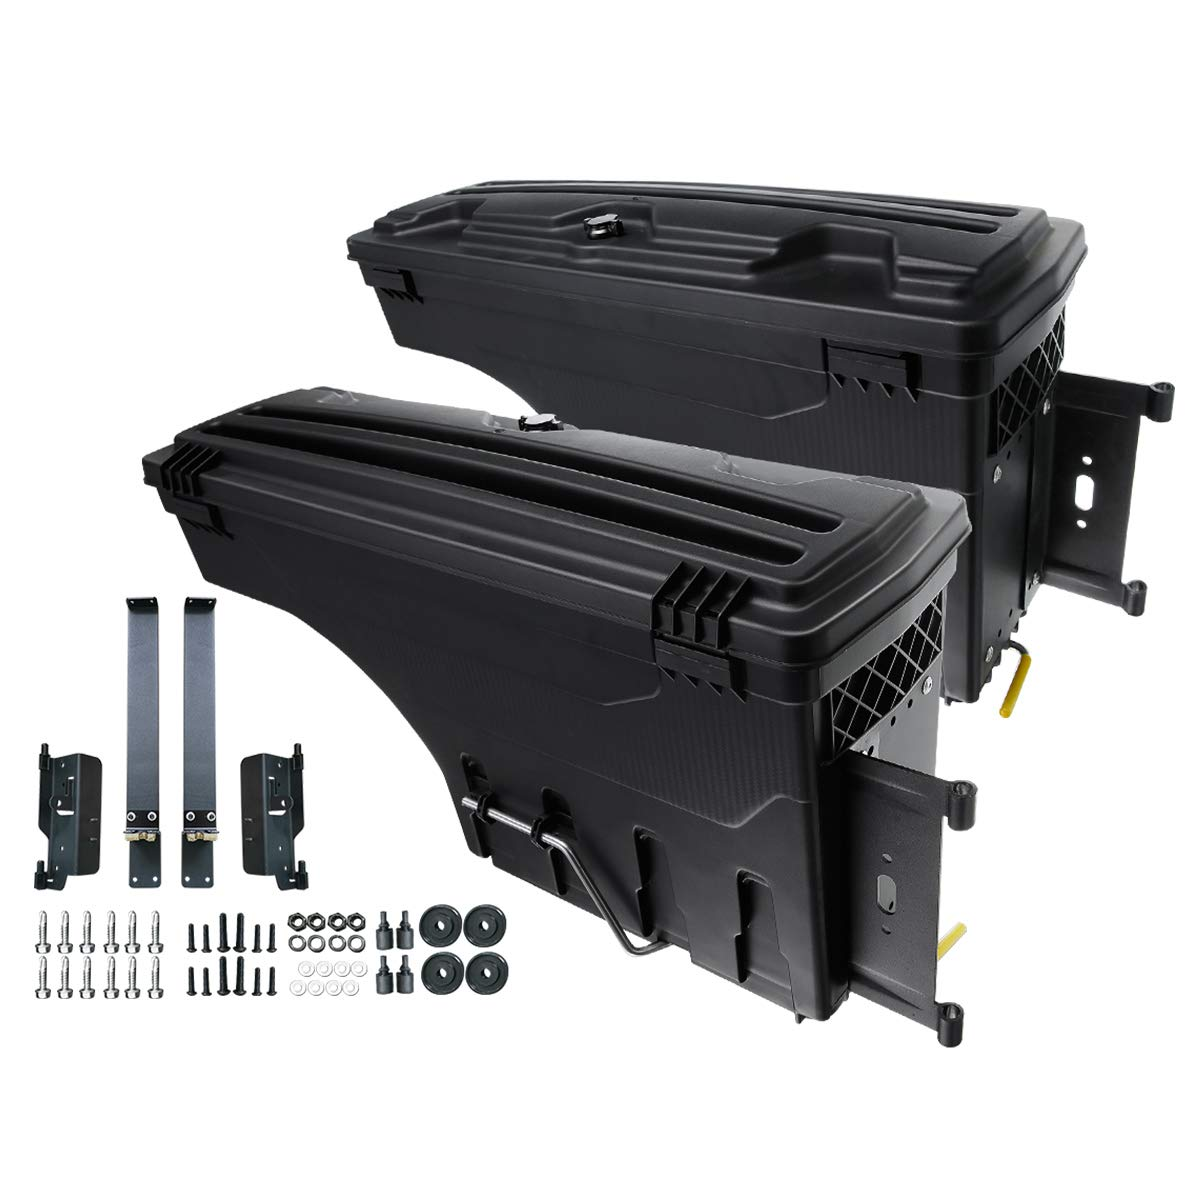 A-Premium Truck Bed Storage Box Case Tool Box Compatible with Dodge Ram 1500 2500 3500 2002-2018 2-PC Set Rear Driver and Passenger side